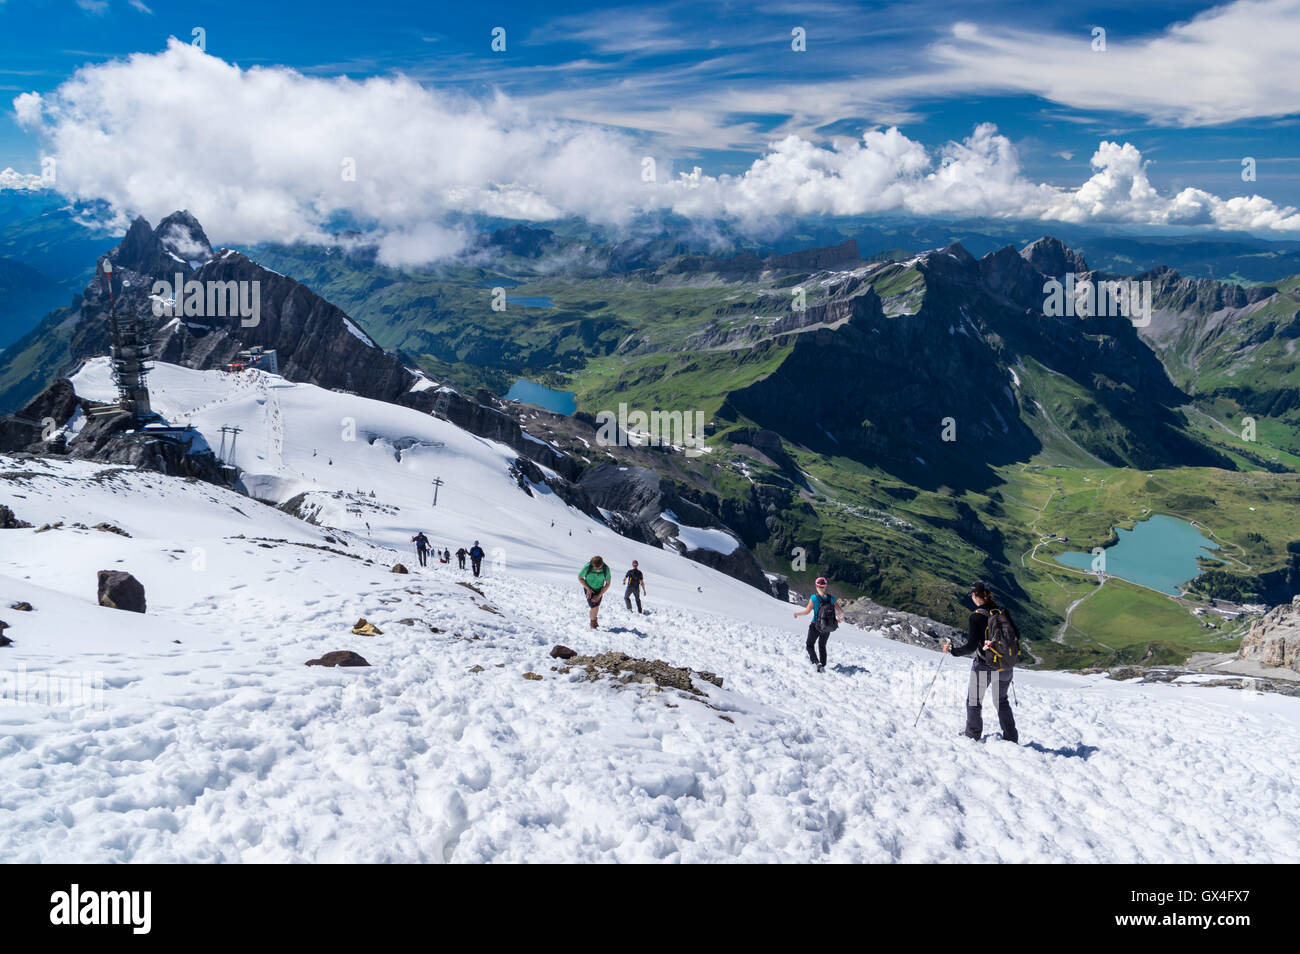 Hikers on the snow descending from Titlis mountain summit to the Titlis cable car station. Engelberg, Switzerland. - Stock Image